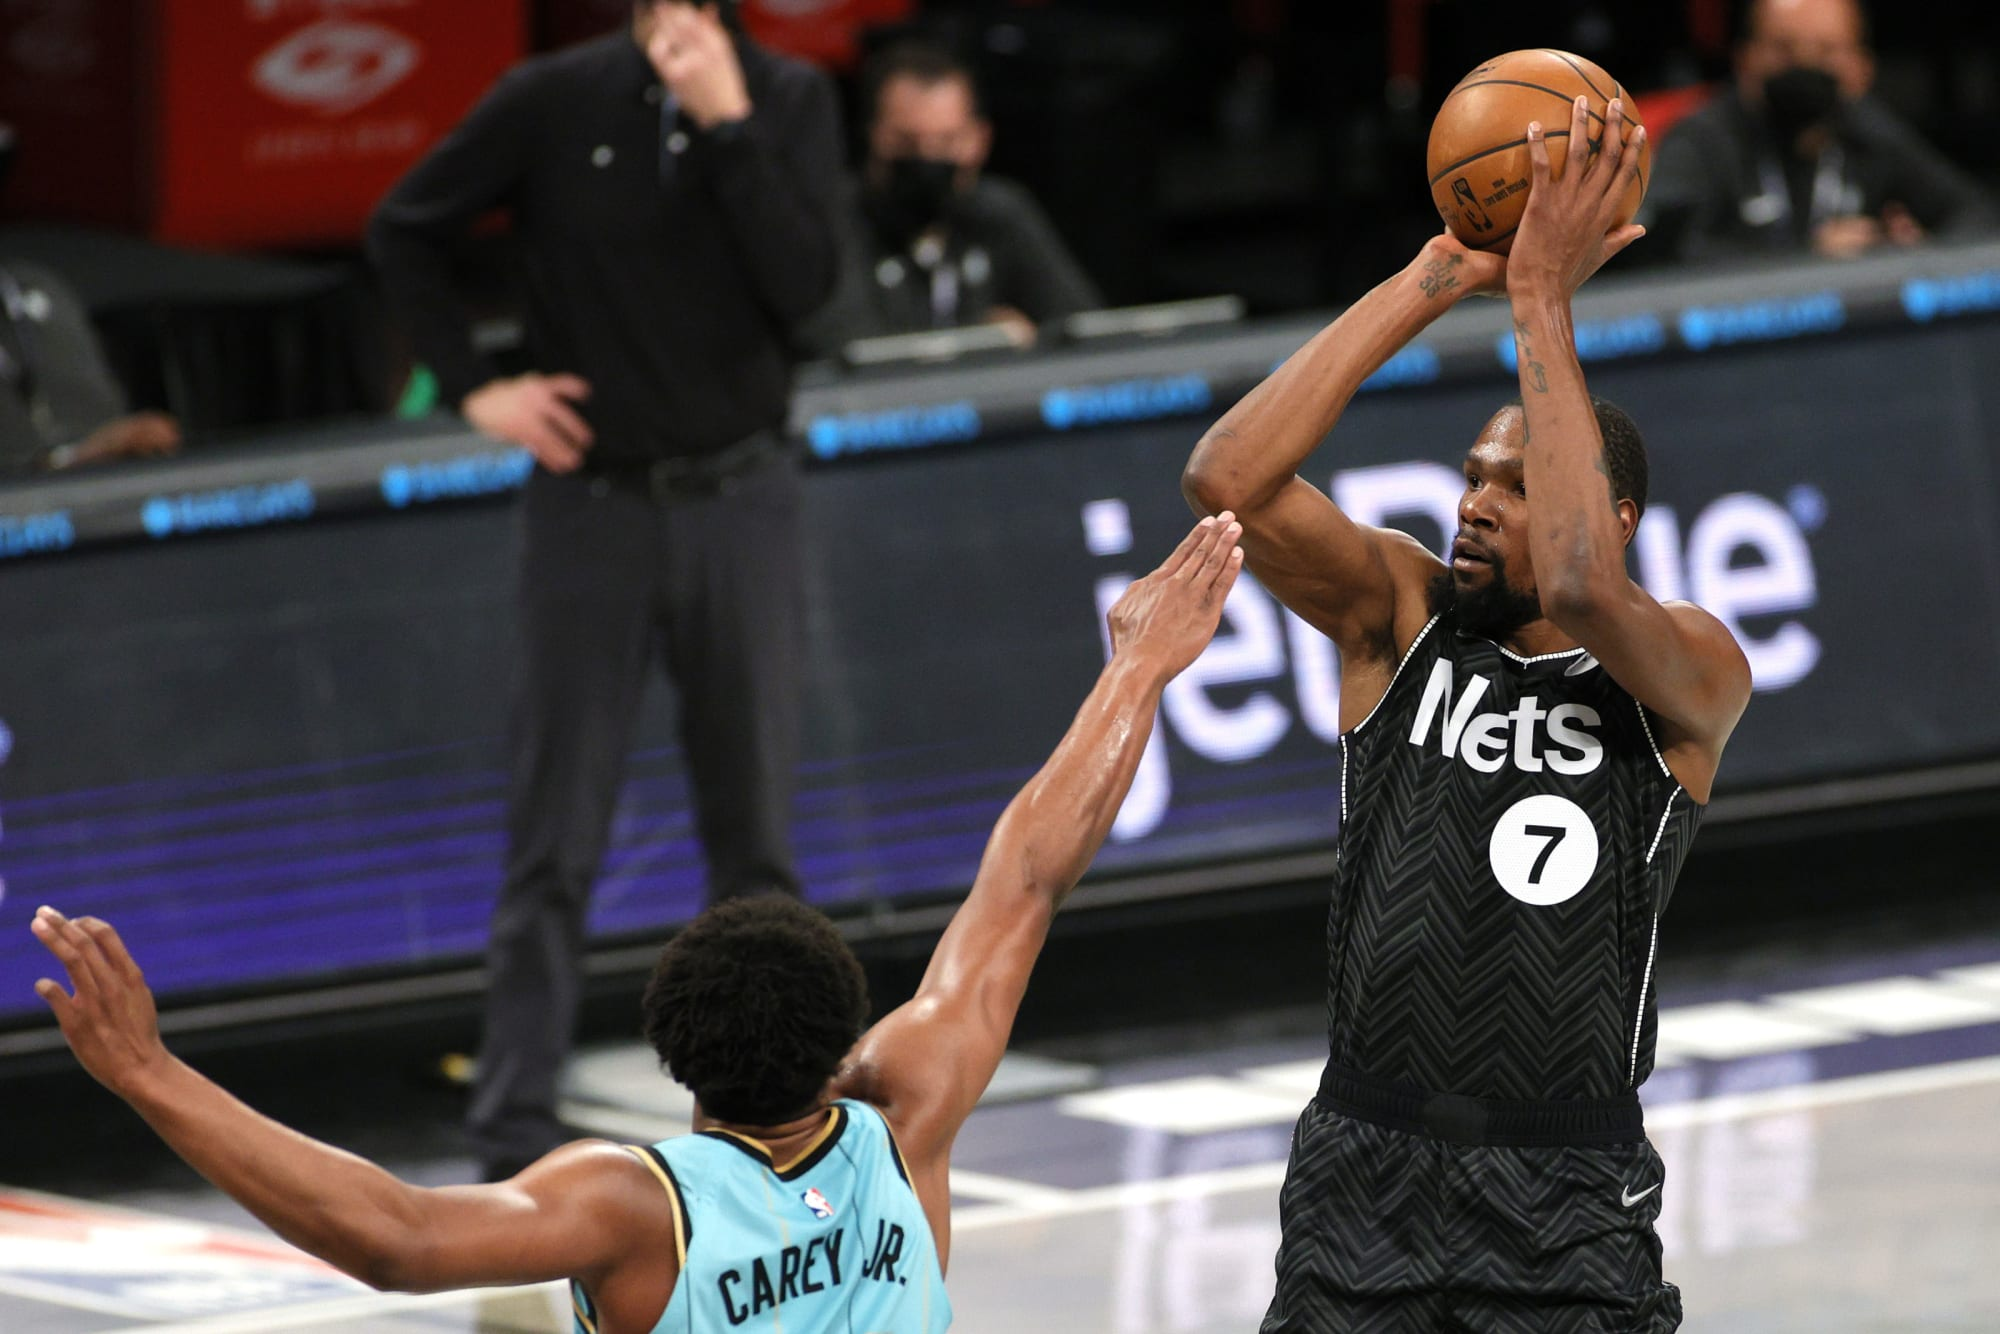 Brooklyn Nets: Kevin Durant ruled out for game due to lower leg contusion